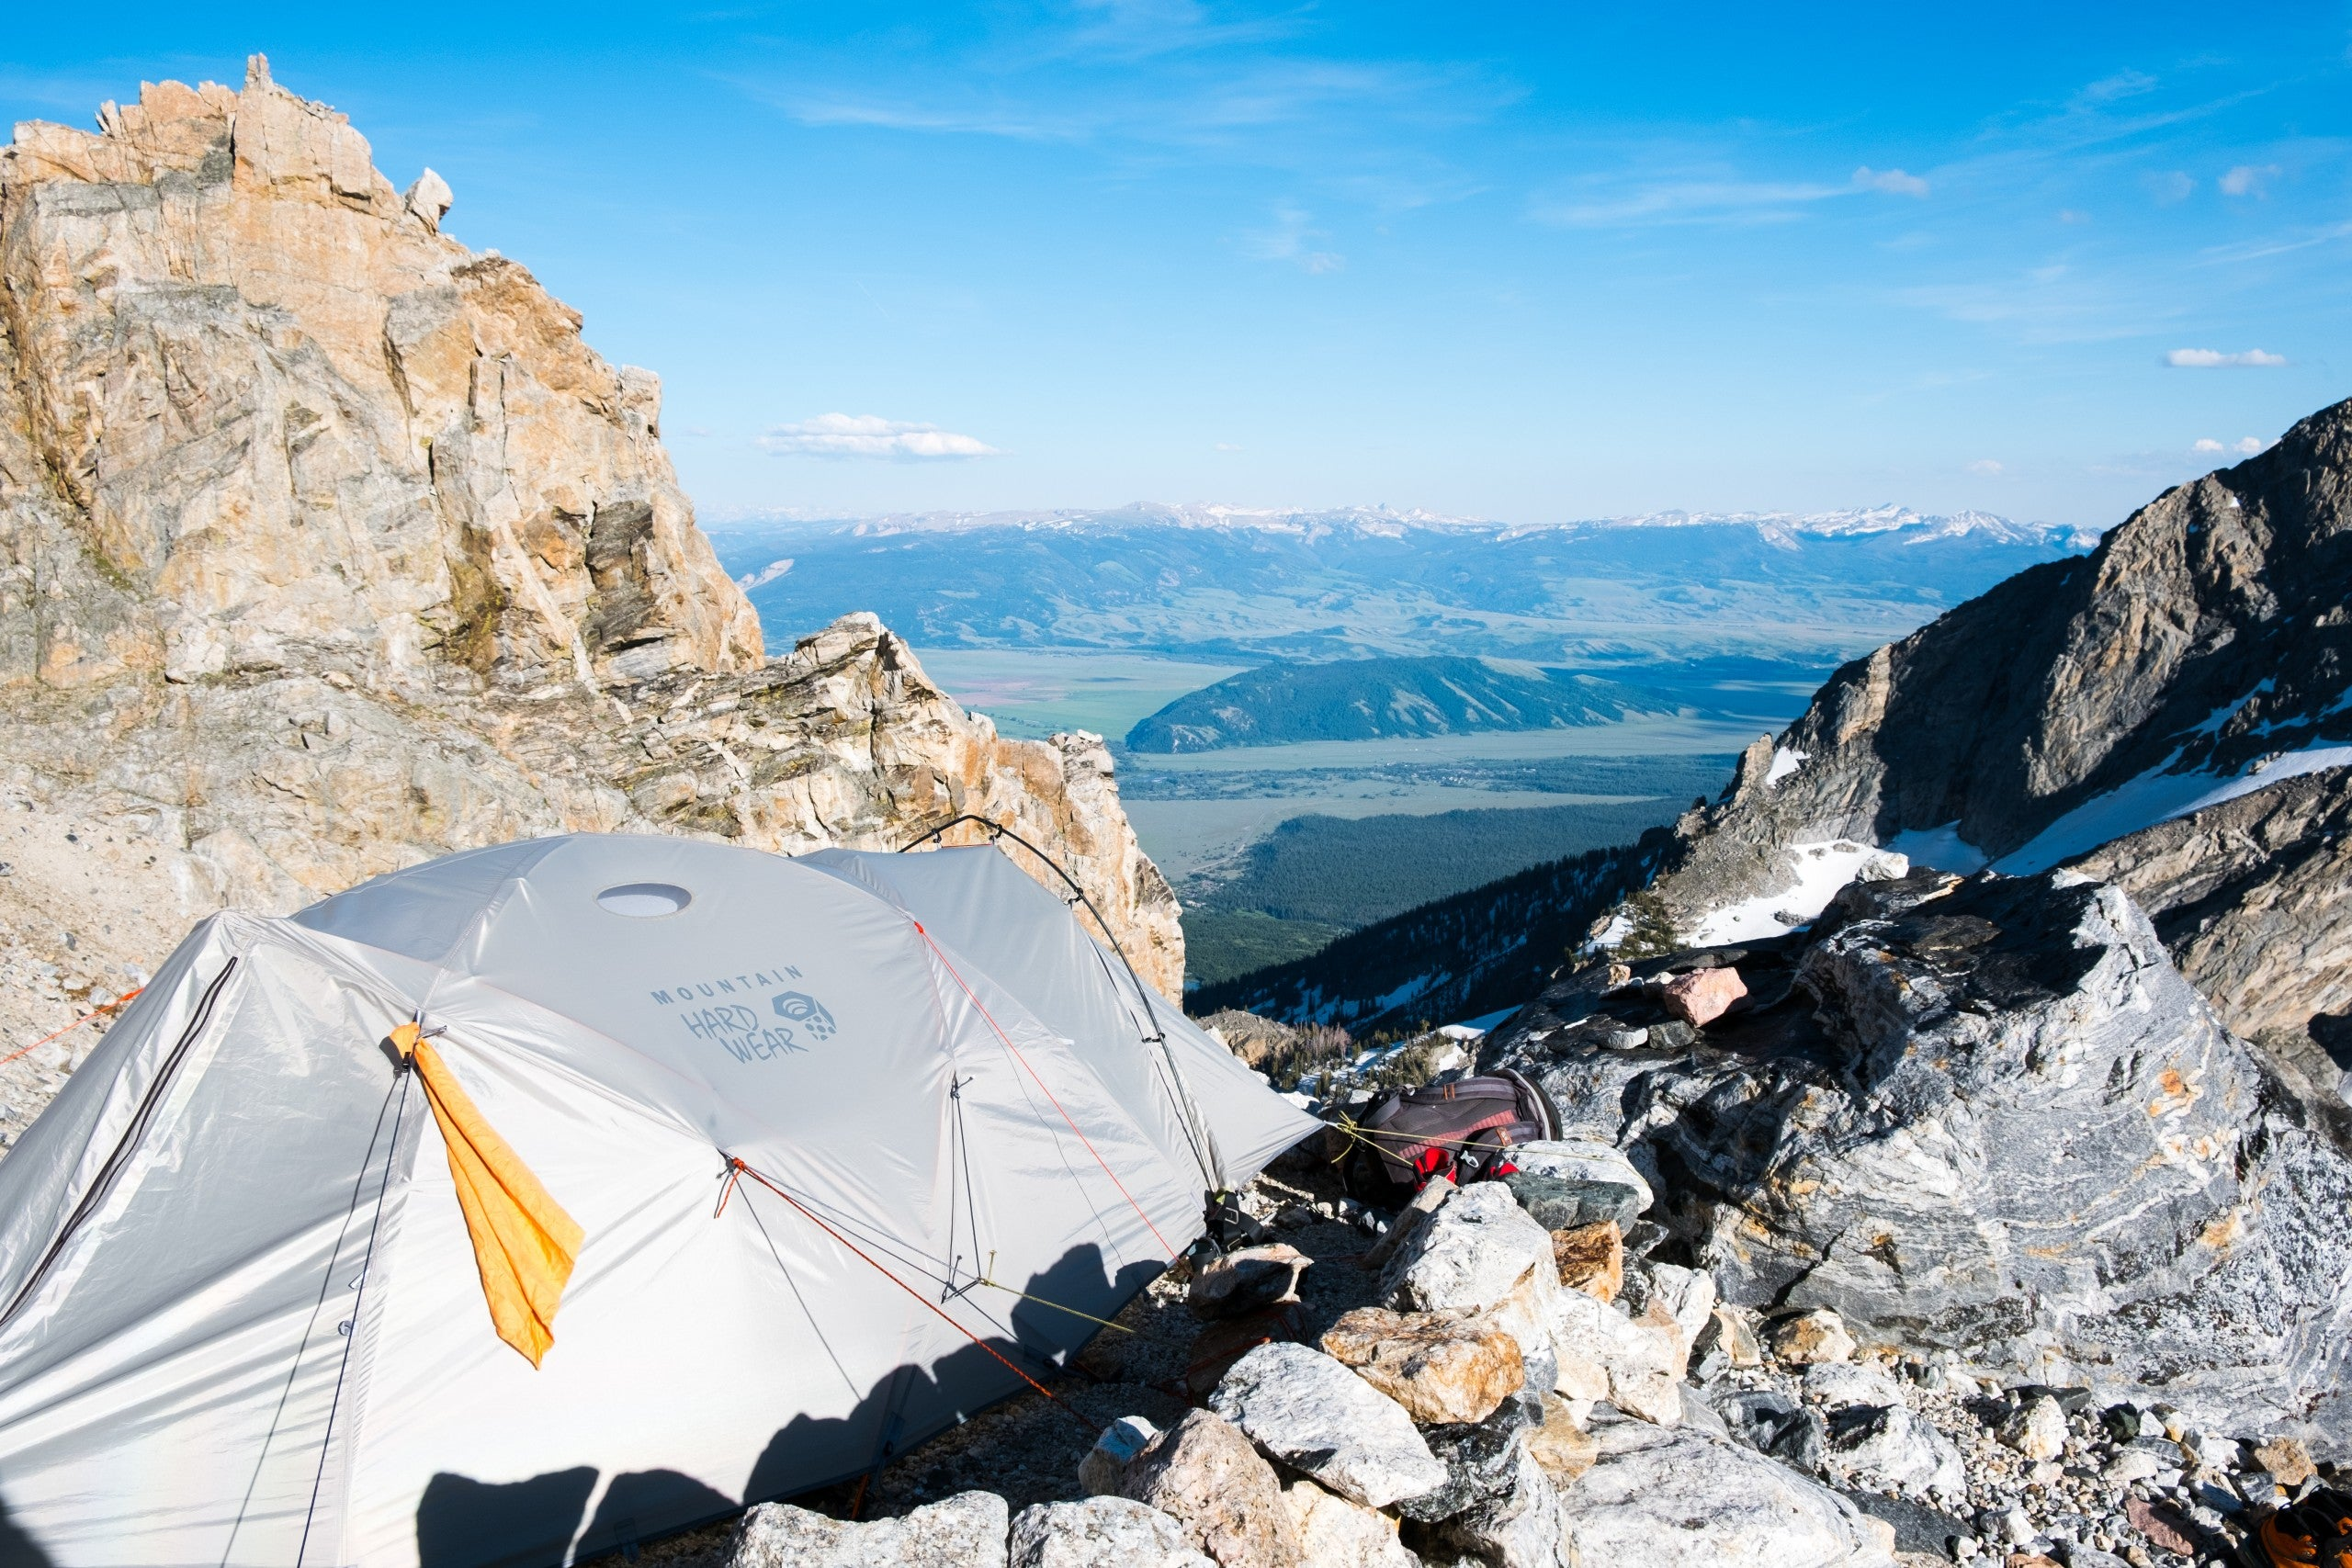 tent on a rocky mountain